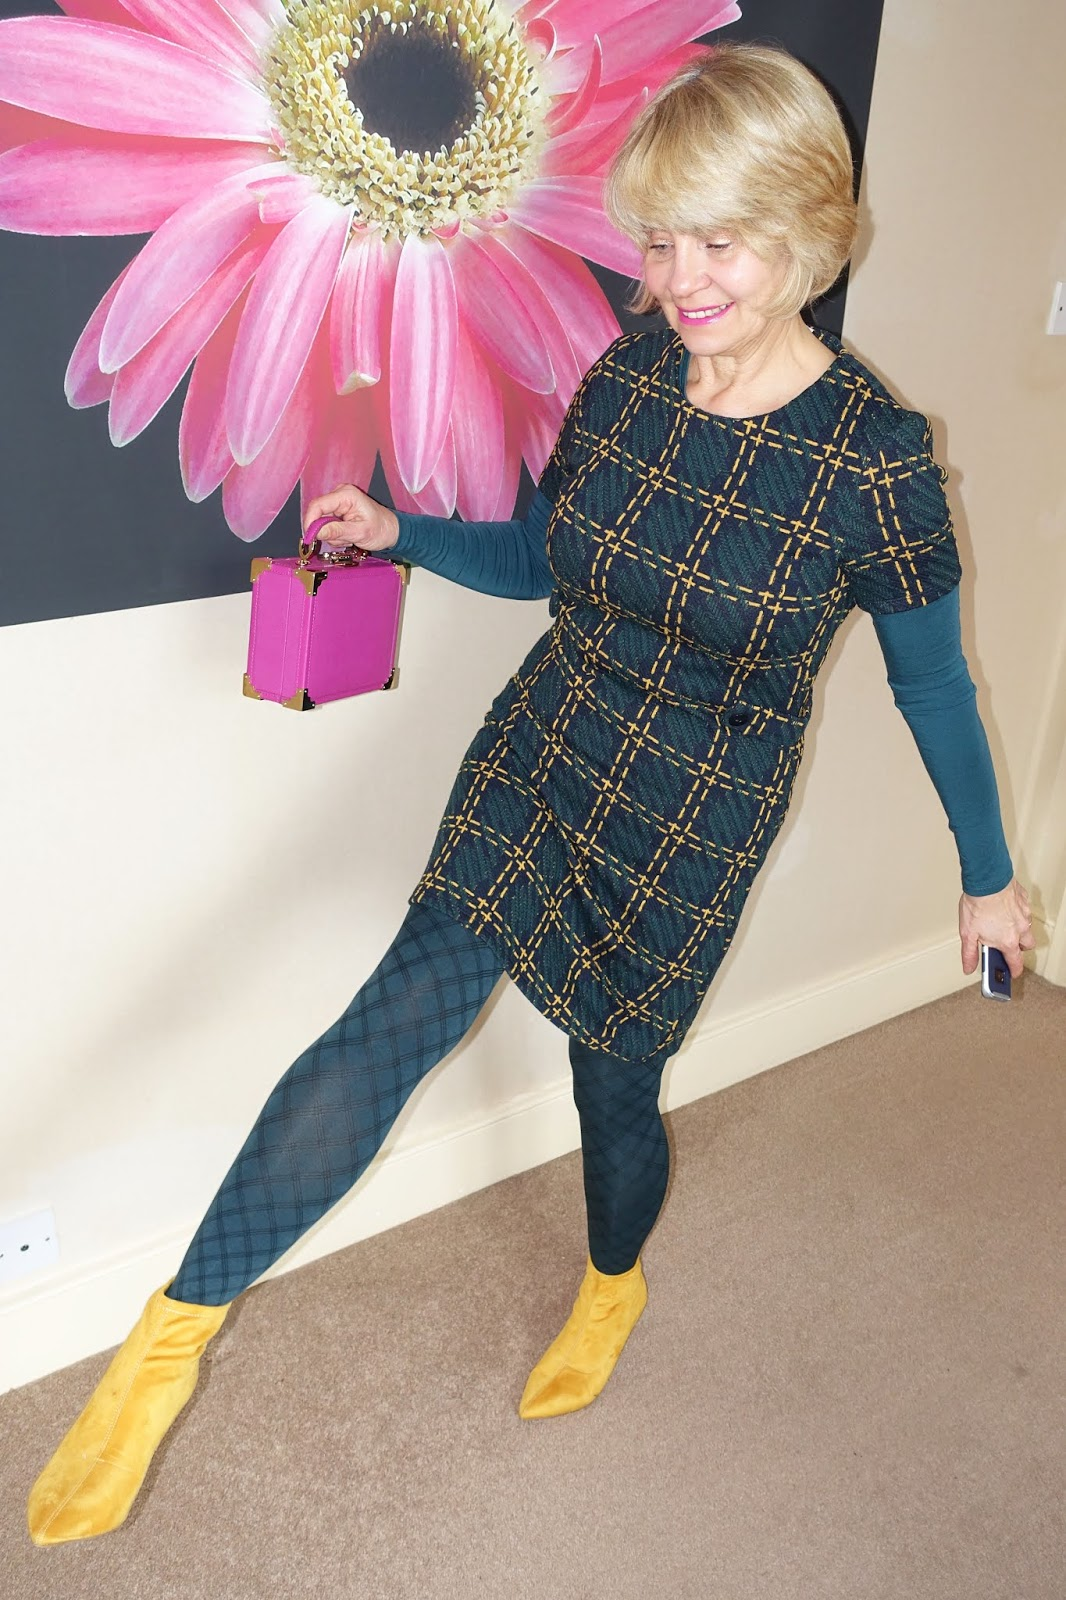 Stylish diamond patterned tights in spruce pull this outfit of a spruce top worn under a green and yellow dress and yellow ankle boots with a splash of pink.